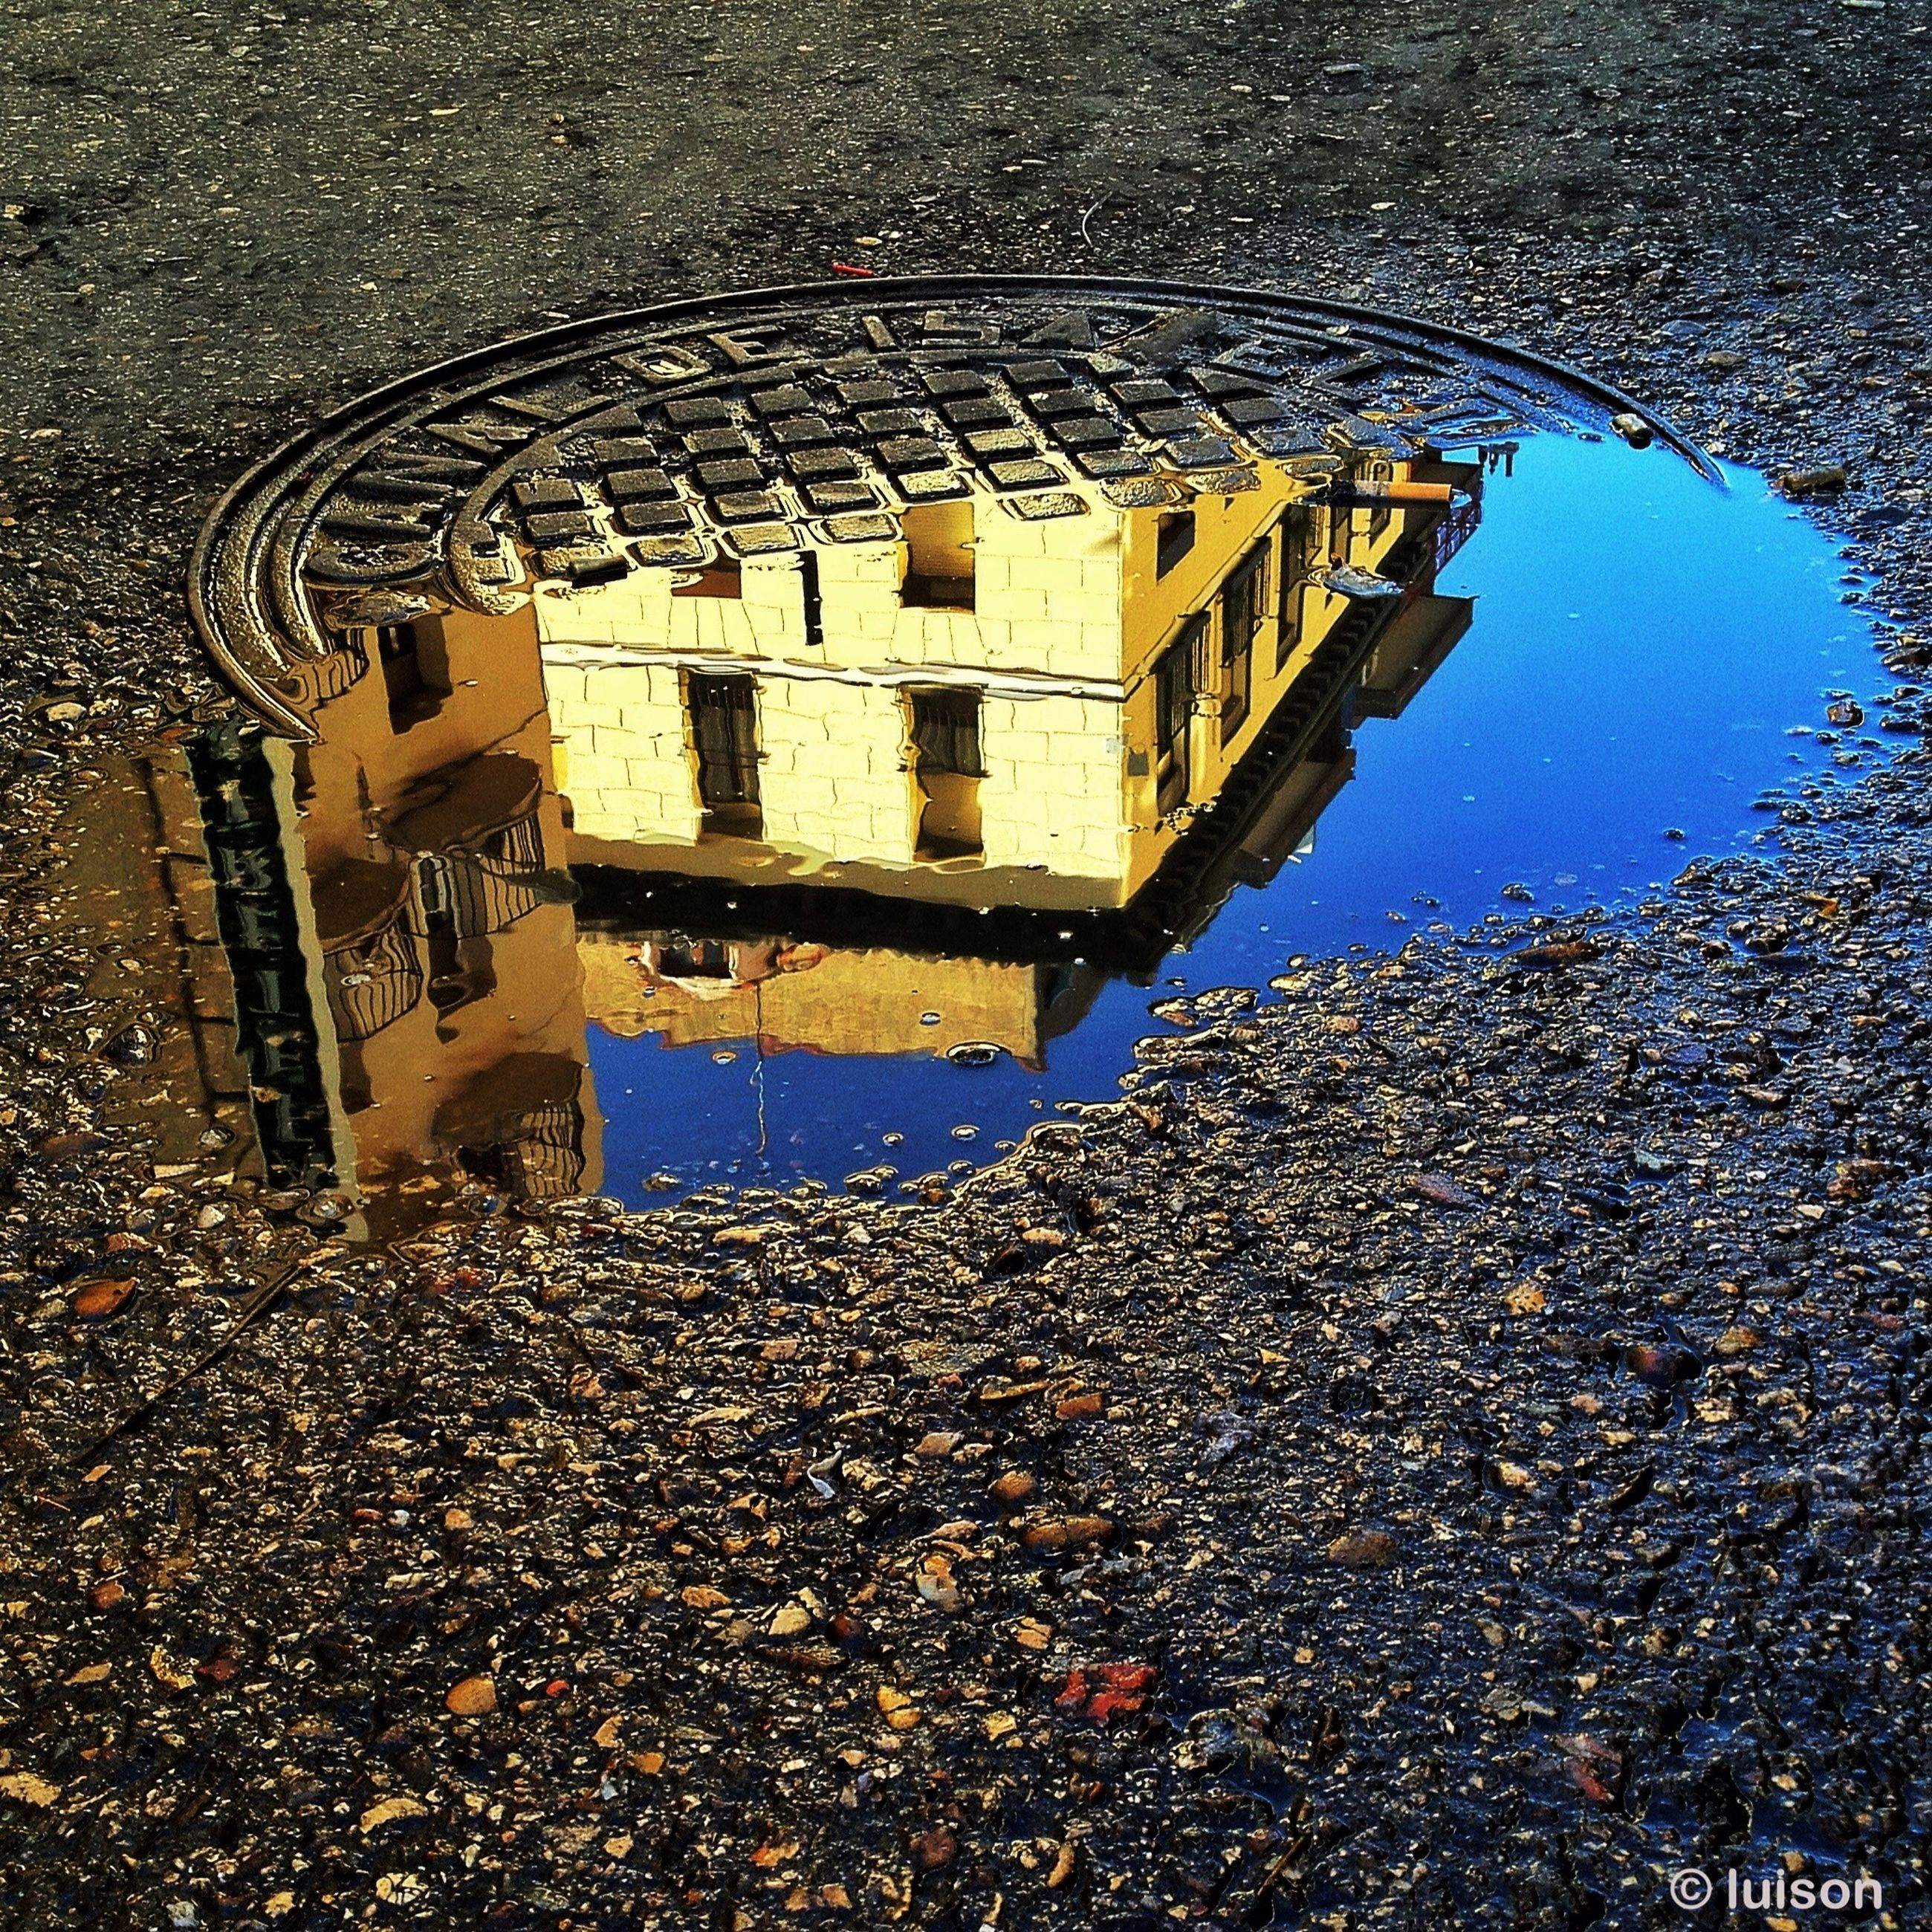 architecture, building exterior, built structure, puddle, street, water, high angle view, wet, city, reflection, road, sky, asphalt, building, outdoors, day, rain, transportation, window, no people